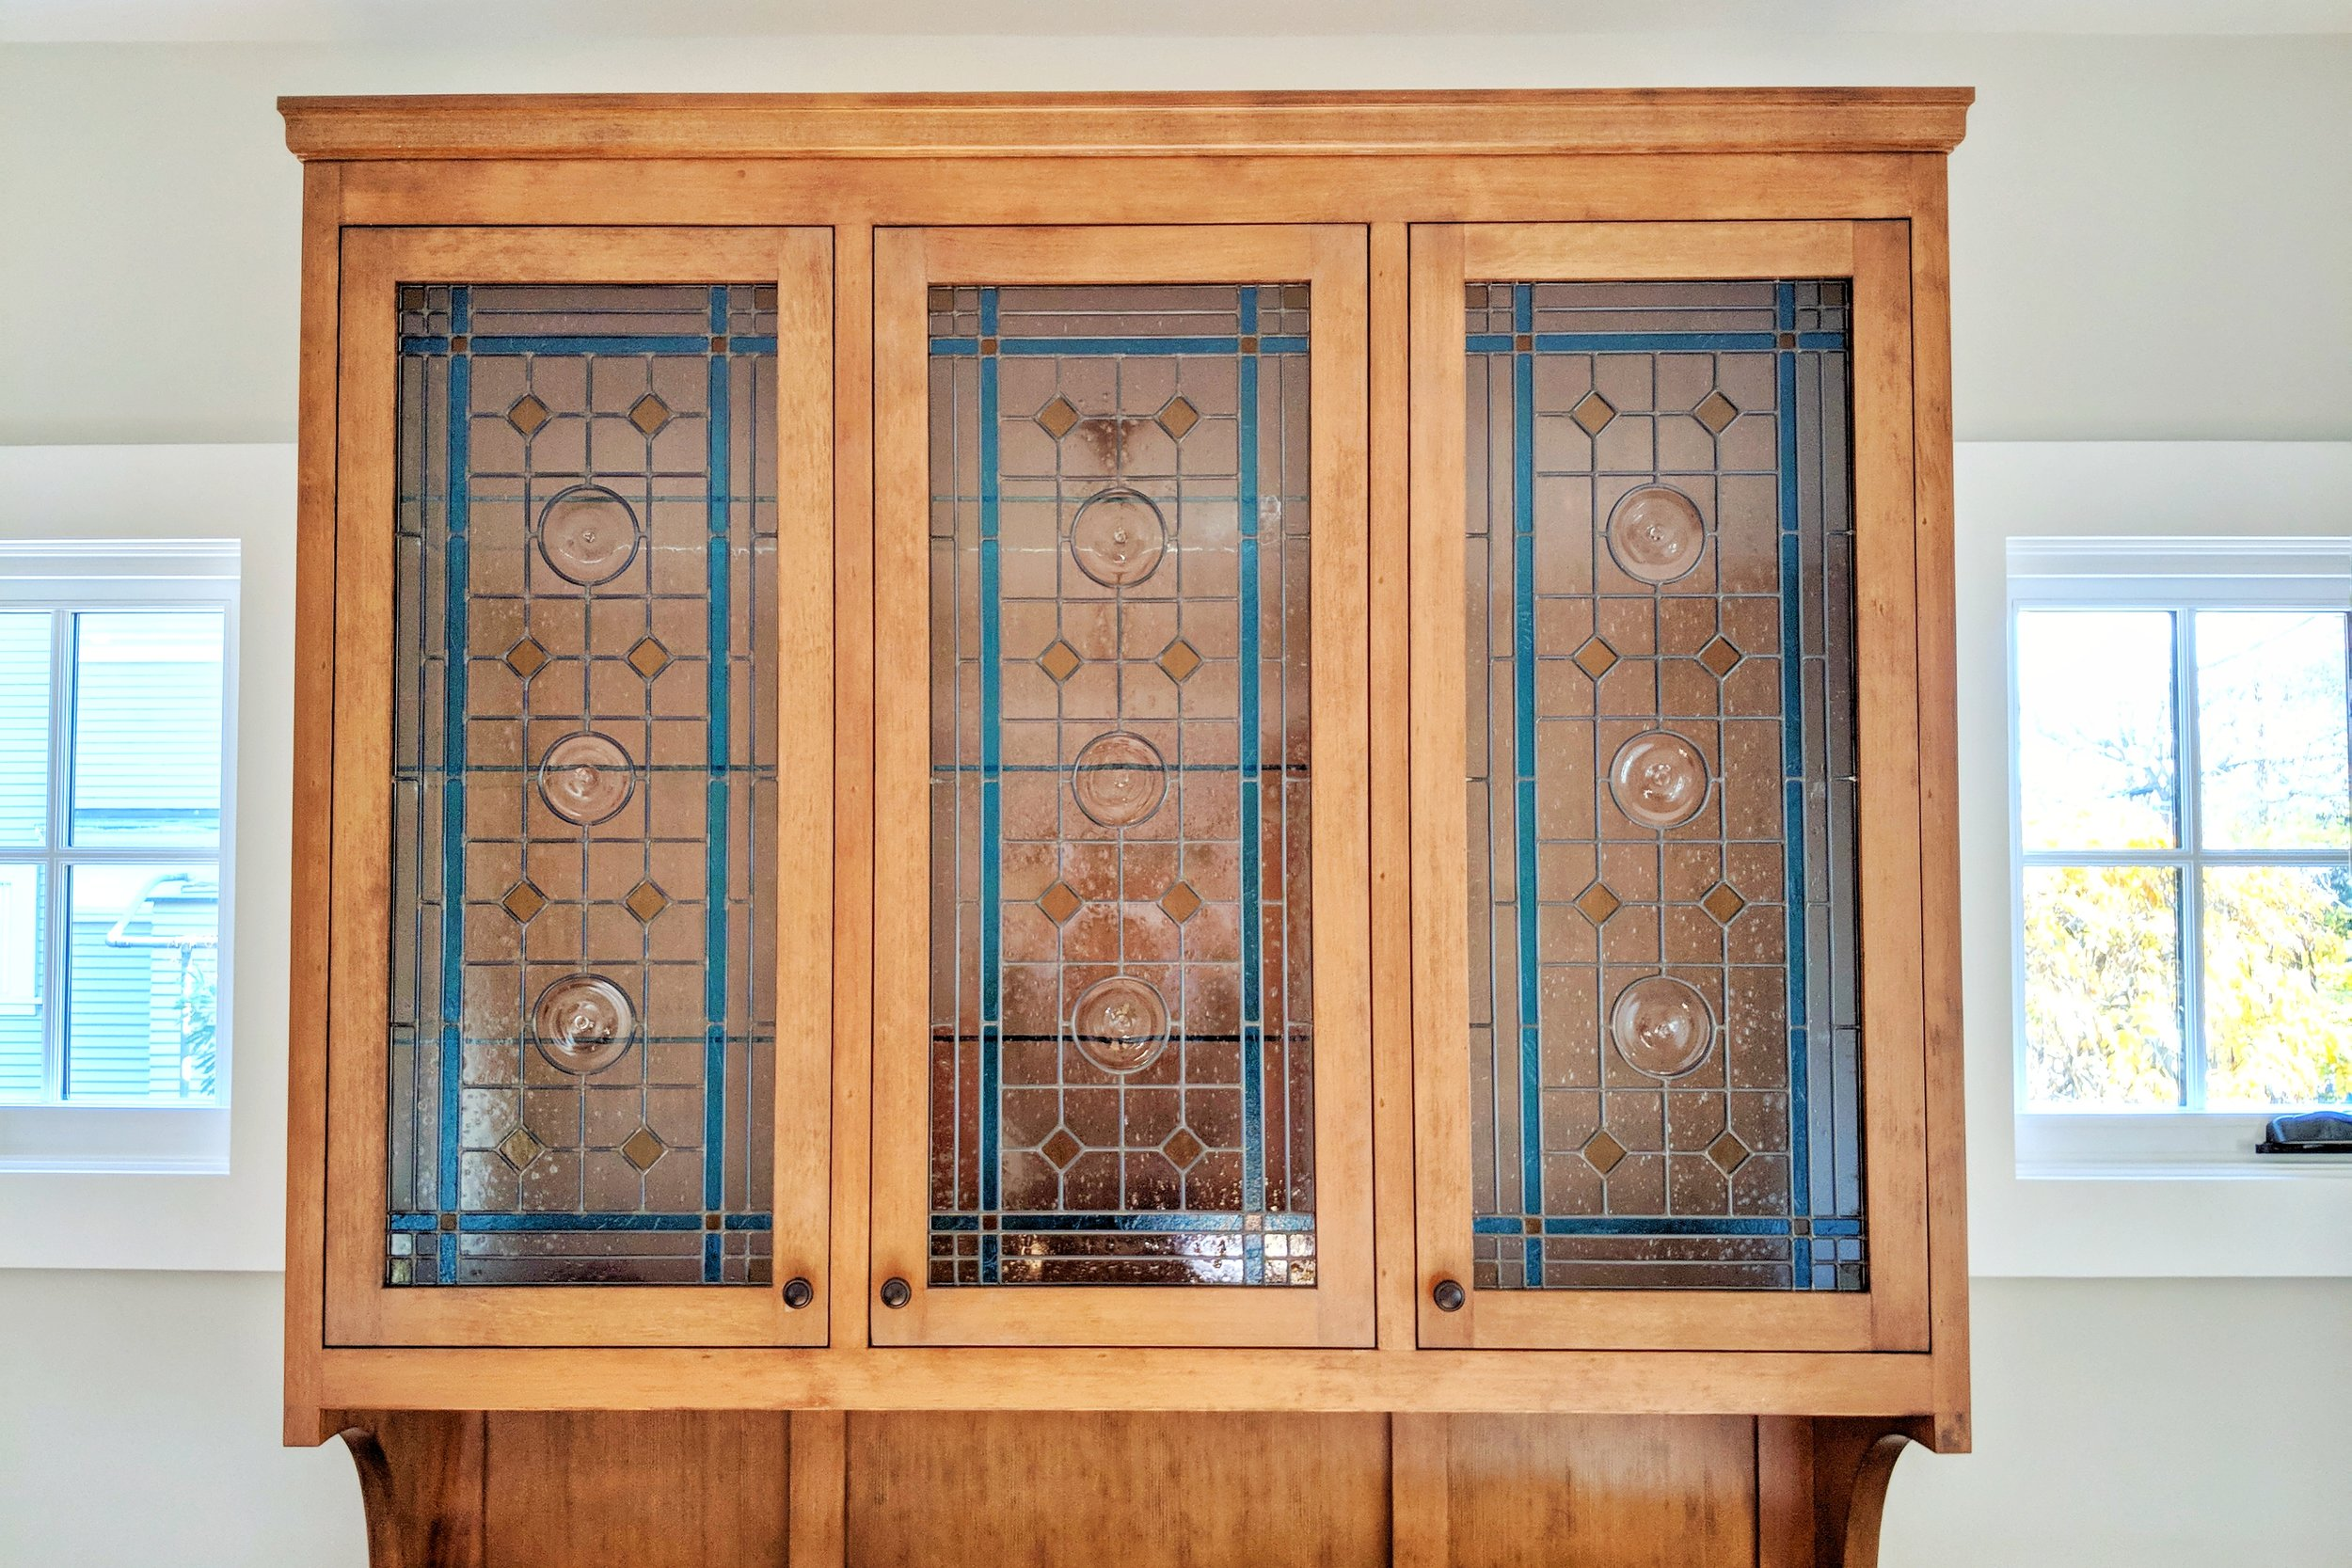 stained glass leaded glass design legacy glass studios menlo park bay area california custom design modern installed craftsman cabinet glass mouth blown rondel bendheim seedy glass cathedral glass.JPG